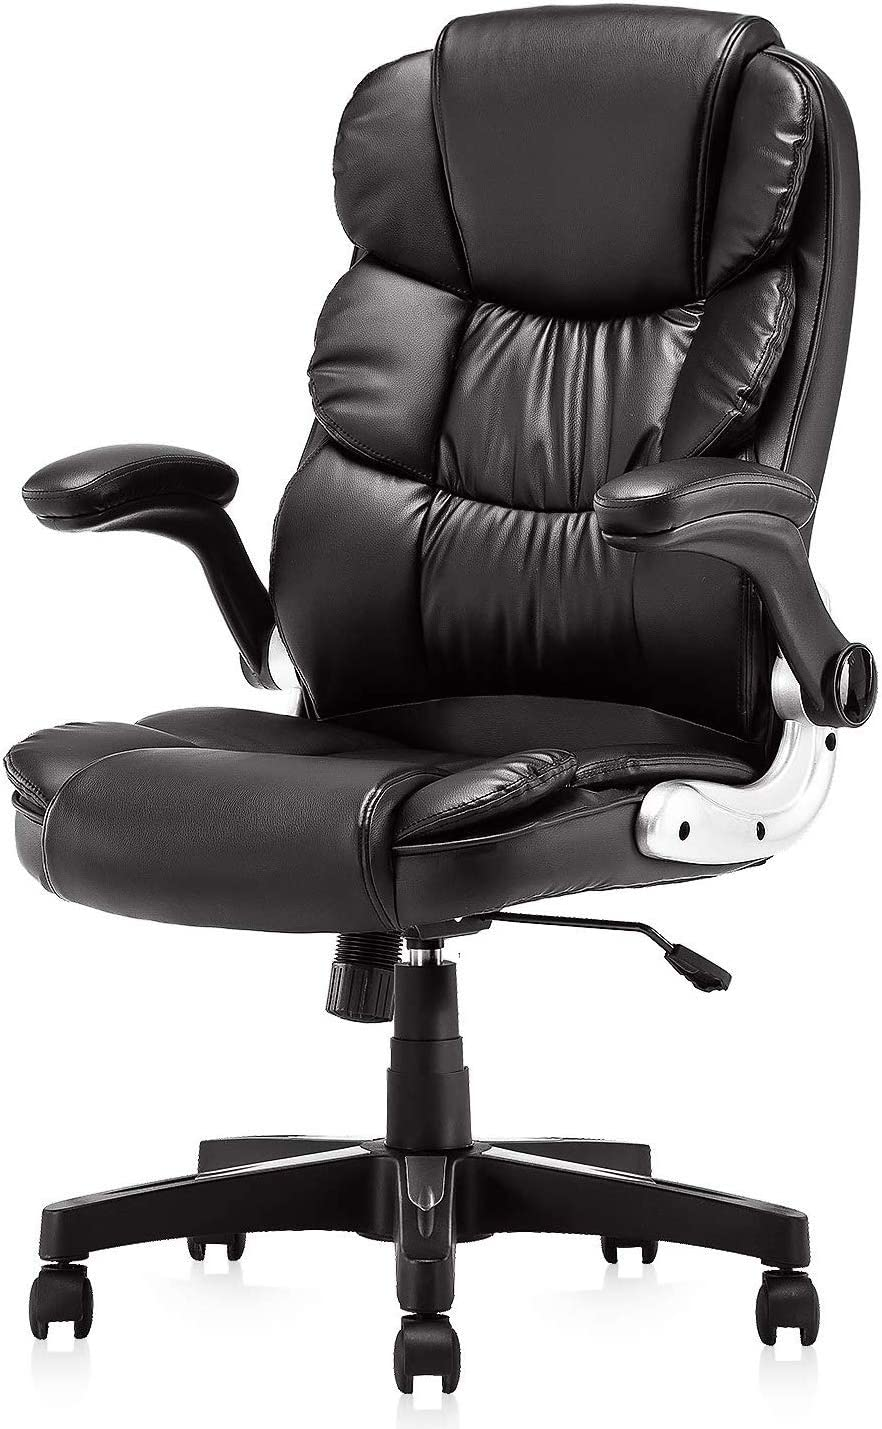 KERMS High Back Office Chair PU Leather Executive Desk Chair with Padded Armrests,Adjustable Ergonomic Swivel Task Chair with Lumbar Support black2